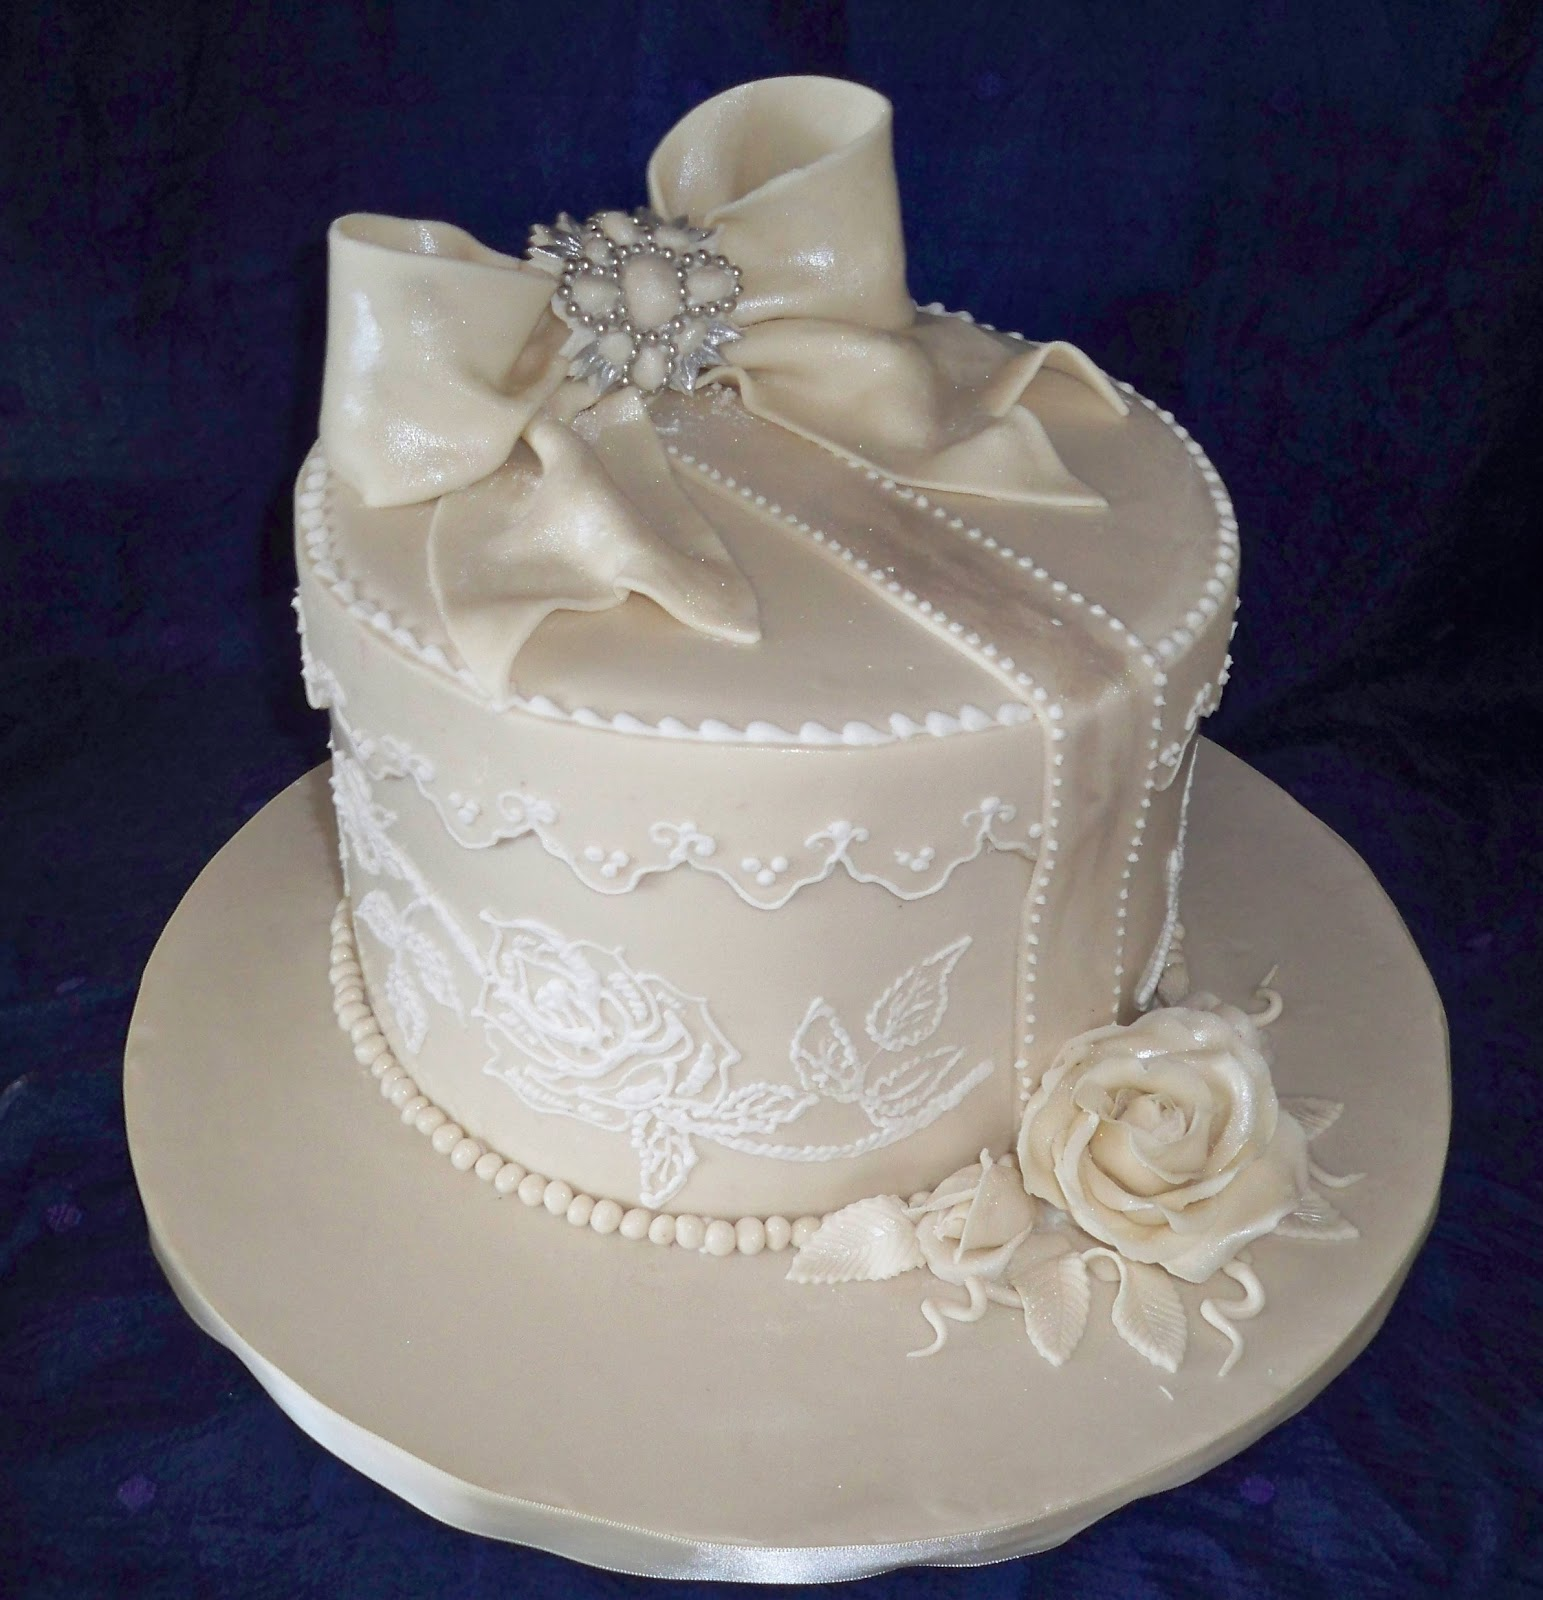 lace, brooche and bow vintage style wedding cake ...